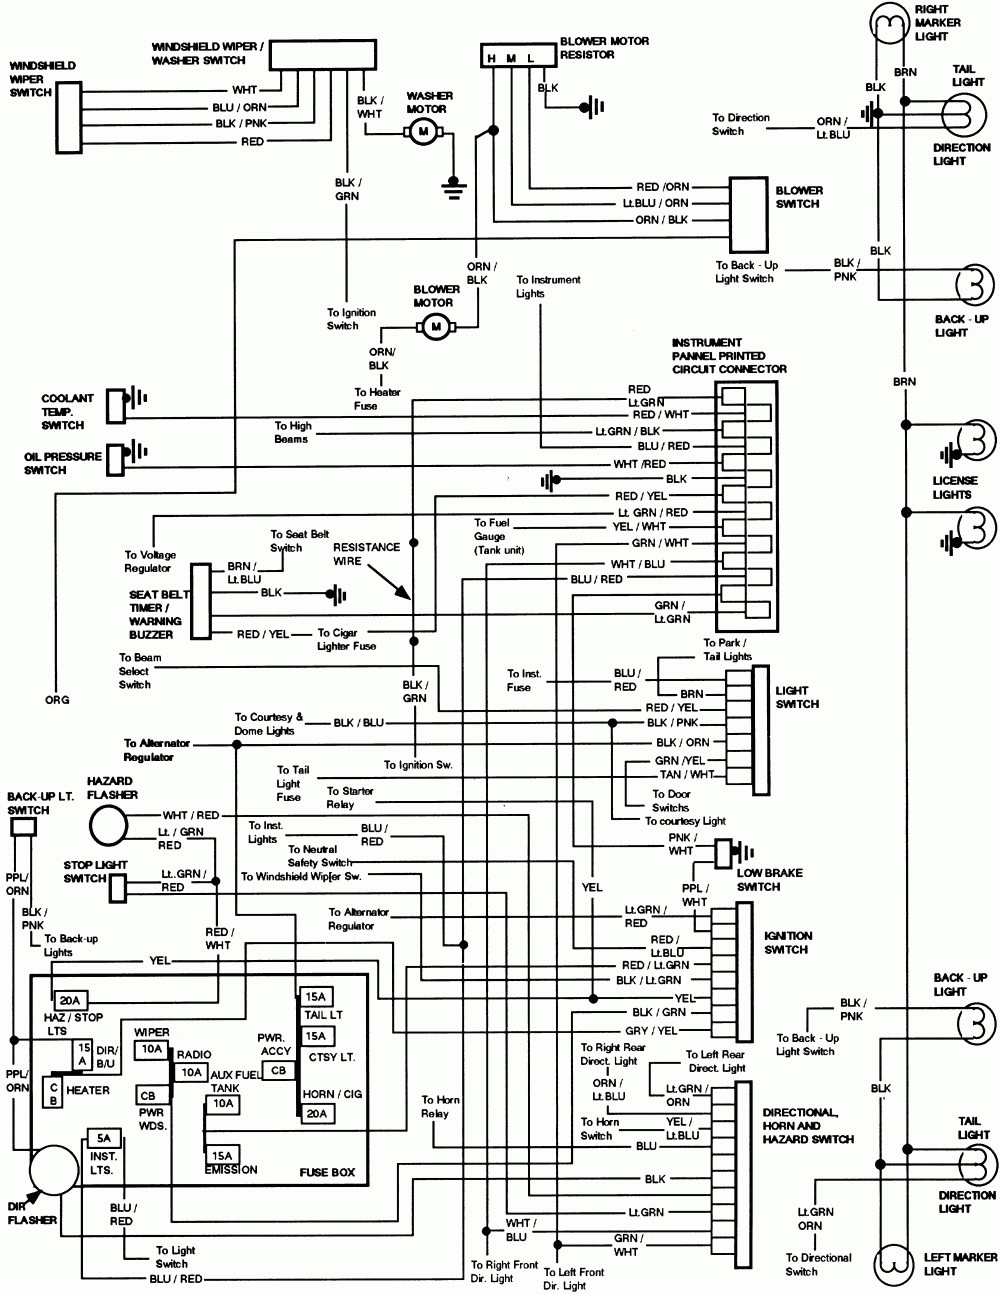 1996 ford f 150 starter wiring diagram wiring data 2008 ford f 150 wiring schematic wiring library ford starter solenoid wiring diagram 1996 ford f 150 starter wiring diagram sciox Images